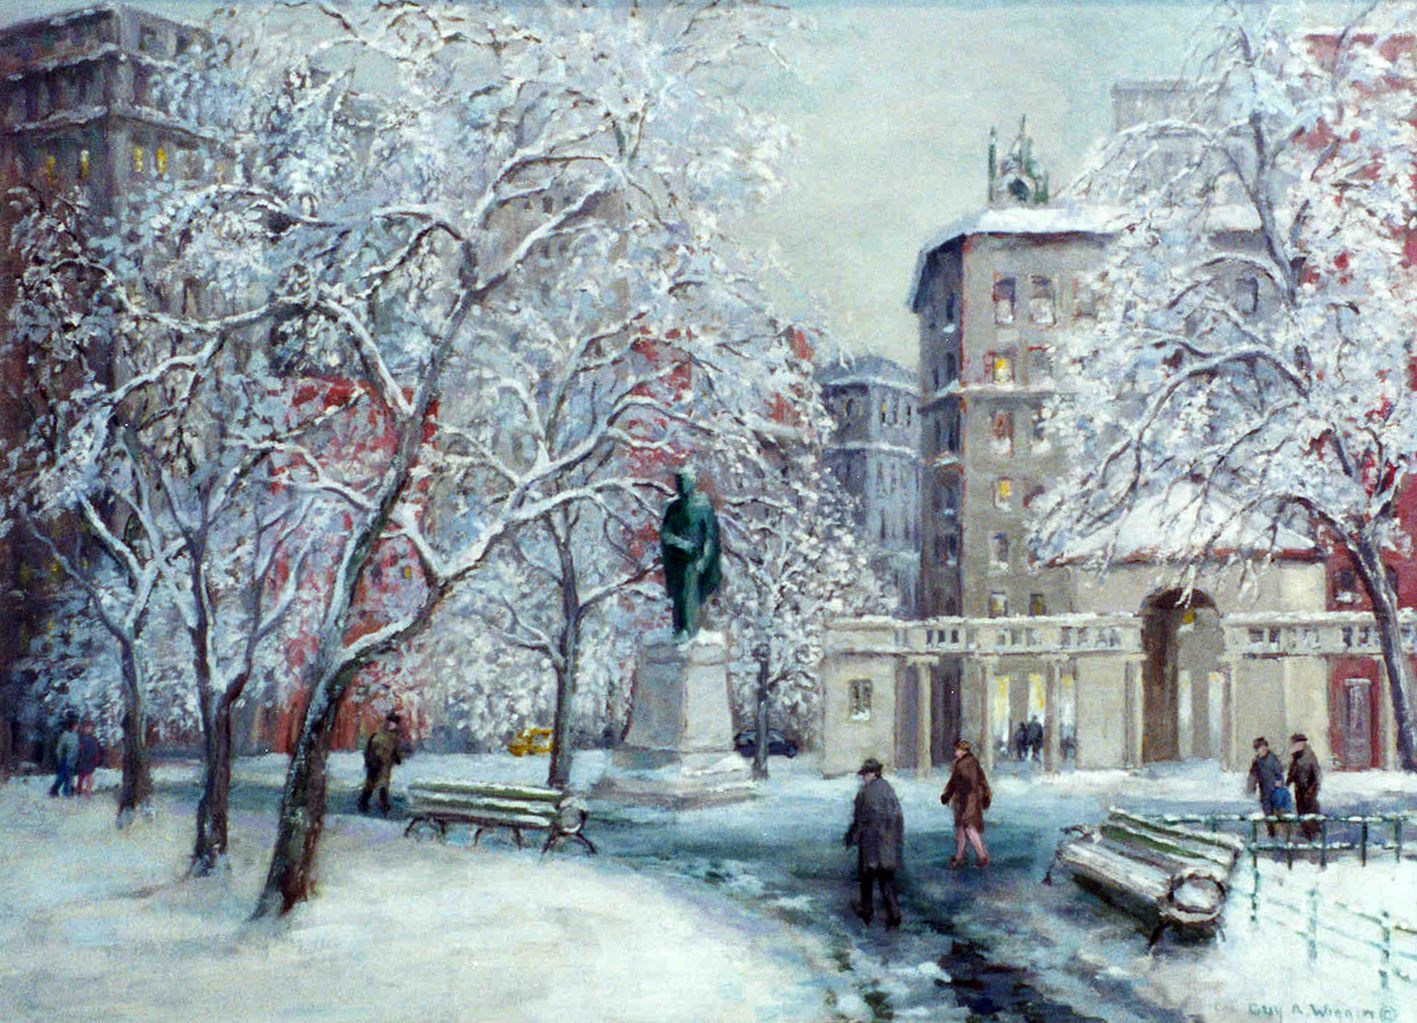 """Guy Wiggins, First Snowfall of the Season-Union Square Looking North. Oil on canvas, 22"""" x 28"""", 1998"""